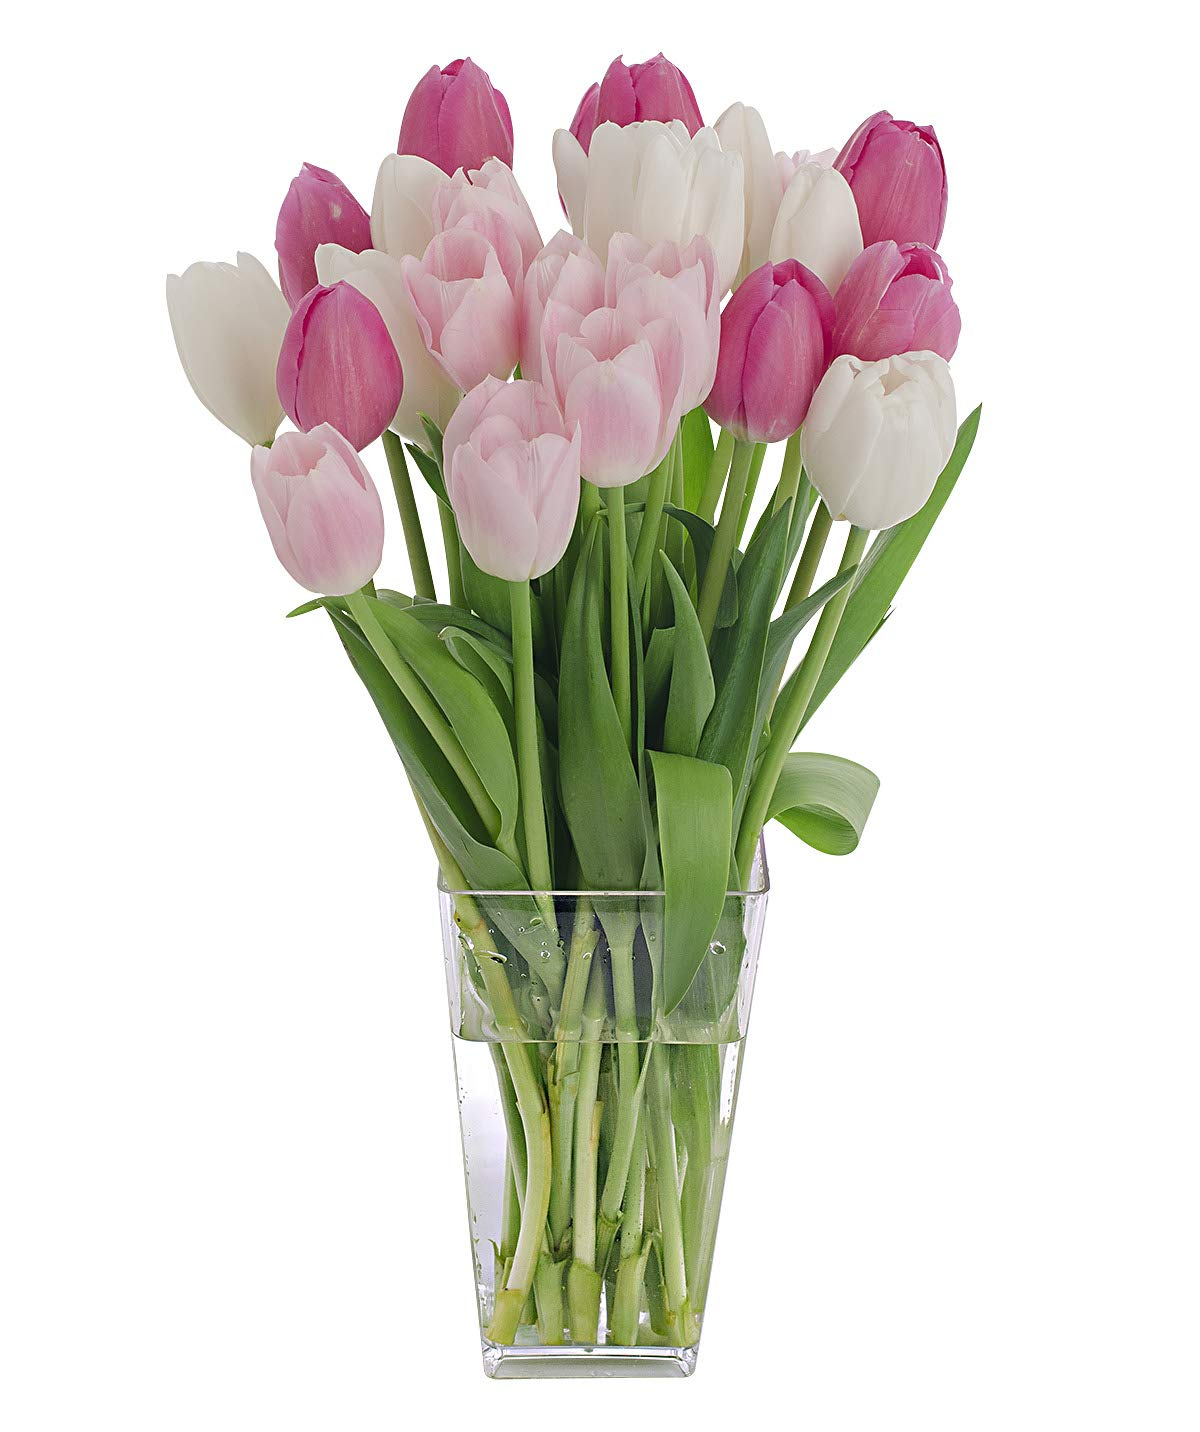 Stargazer Barn Pink Kiss Bouquet 2 Dozen Pink & White Tulips with Clear Vase